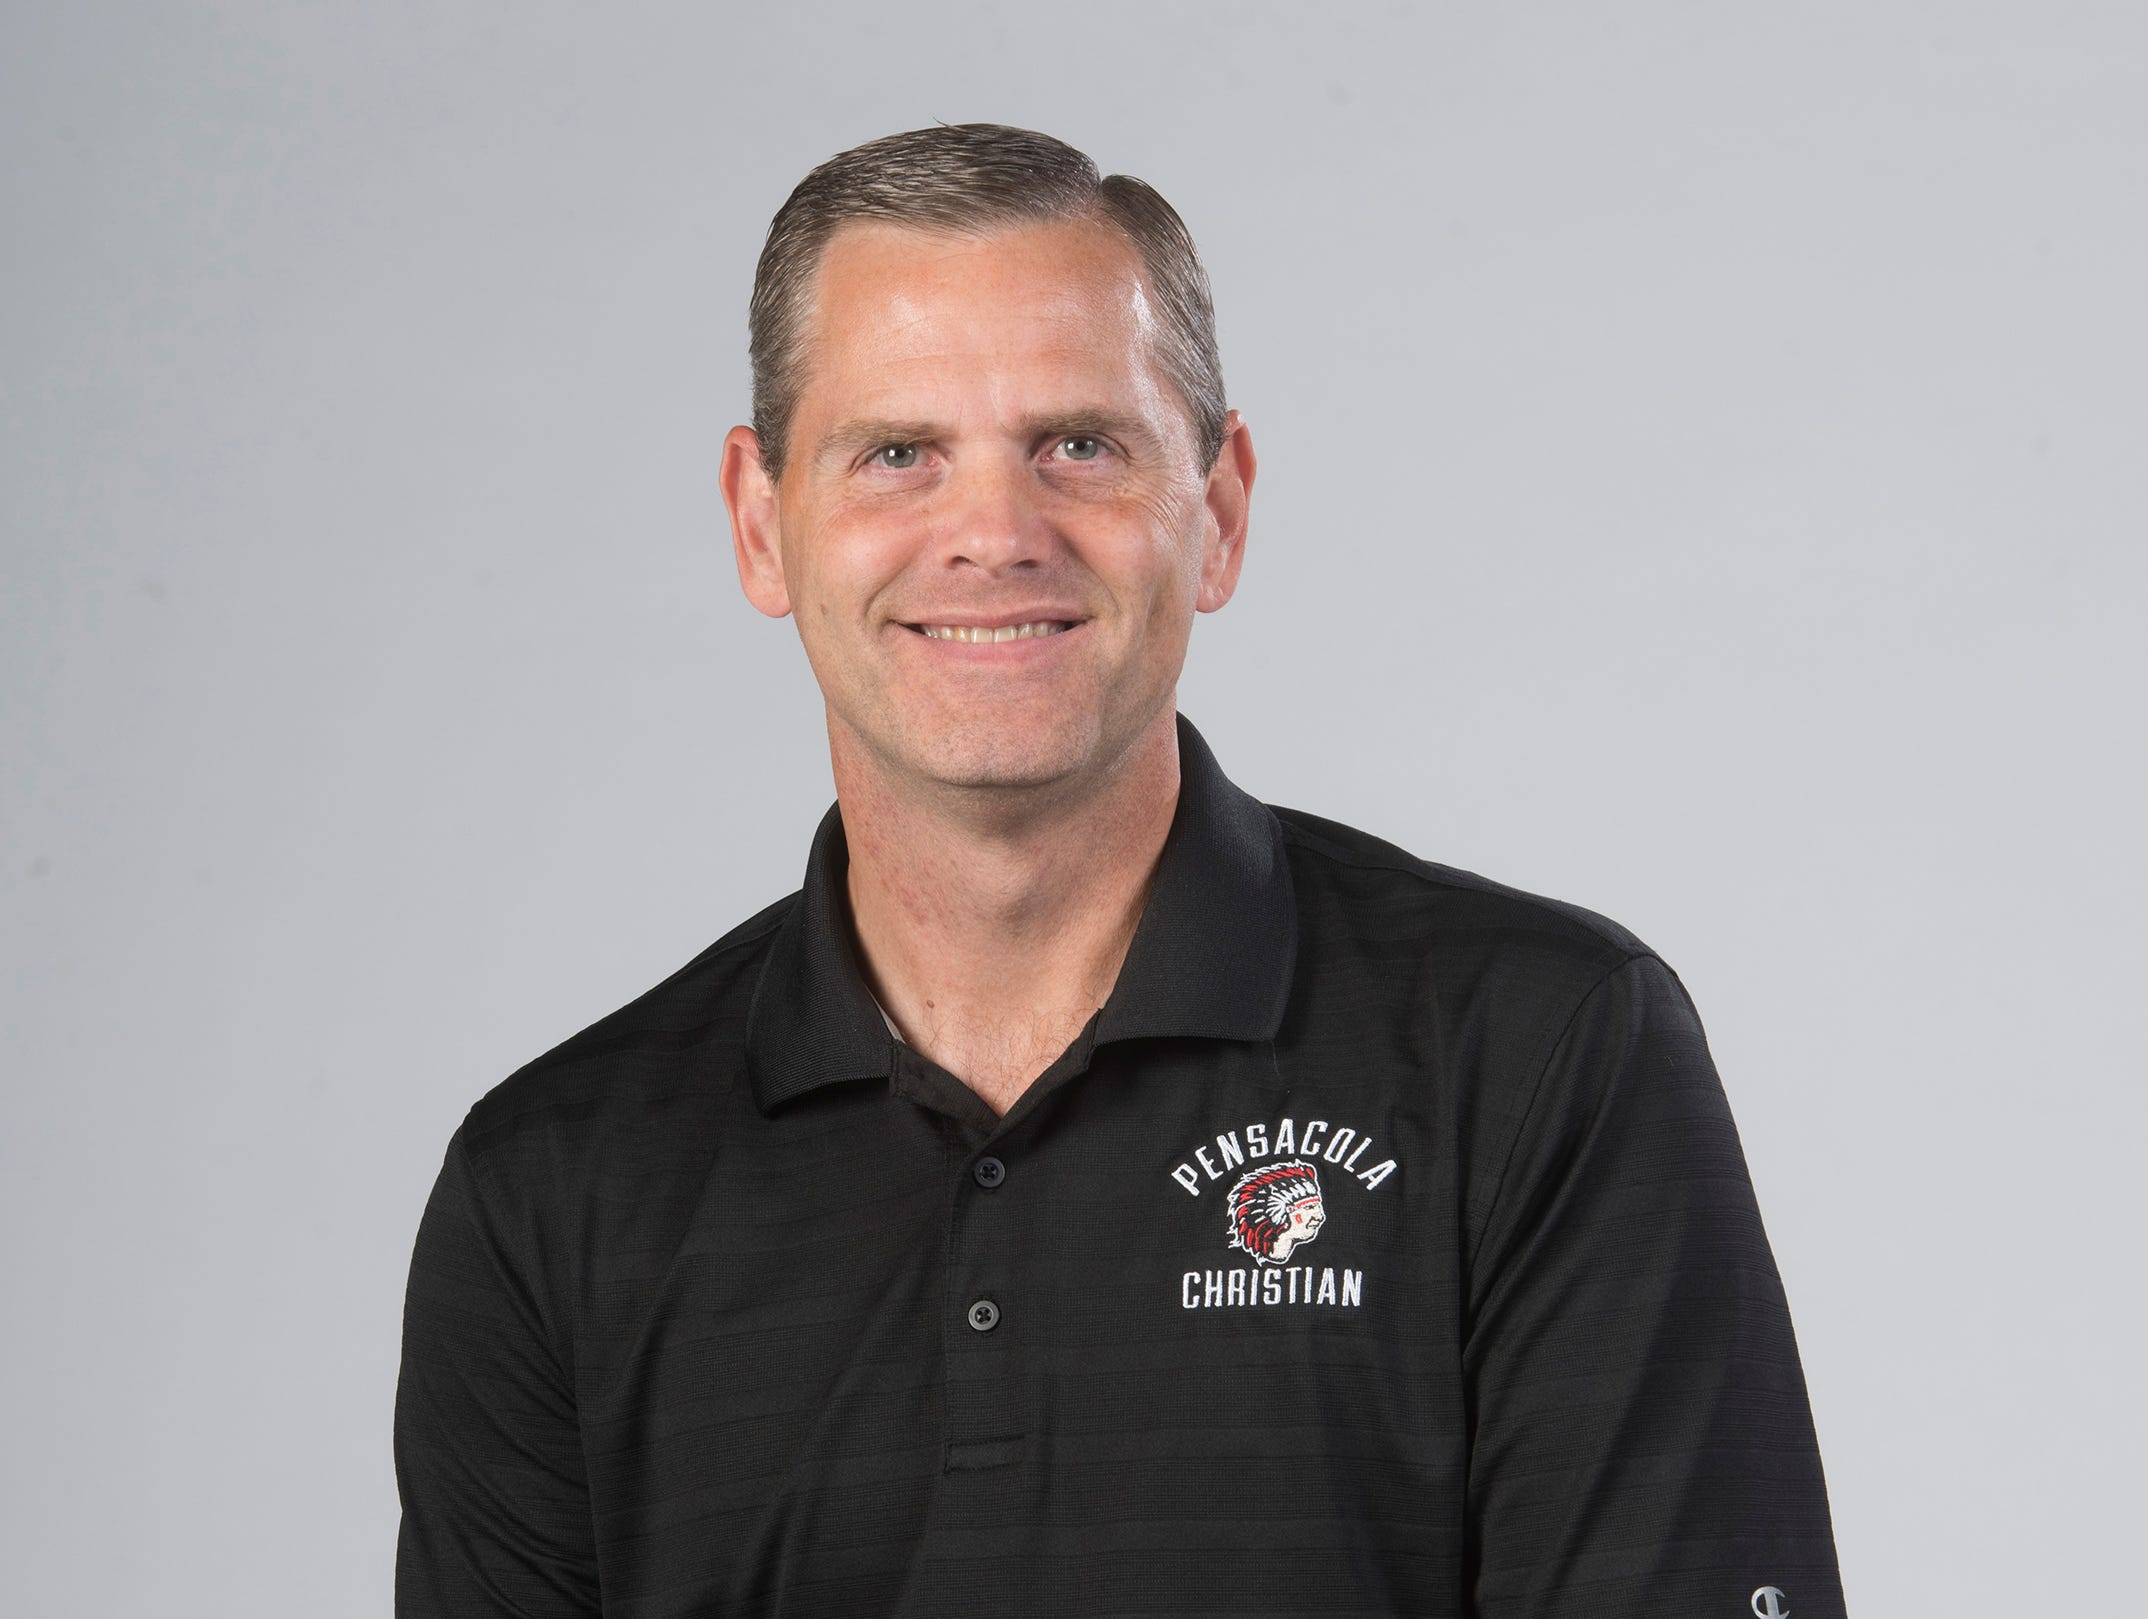 Scott Cochran, Pensacola Christian Academy, cross country coach